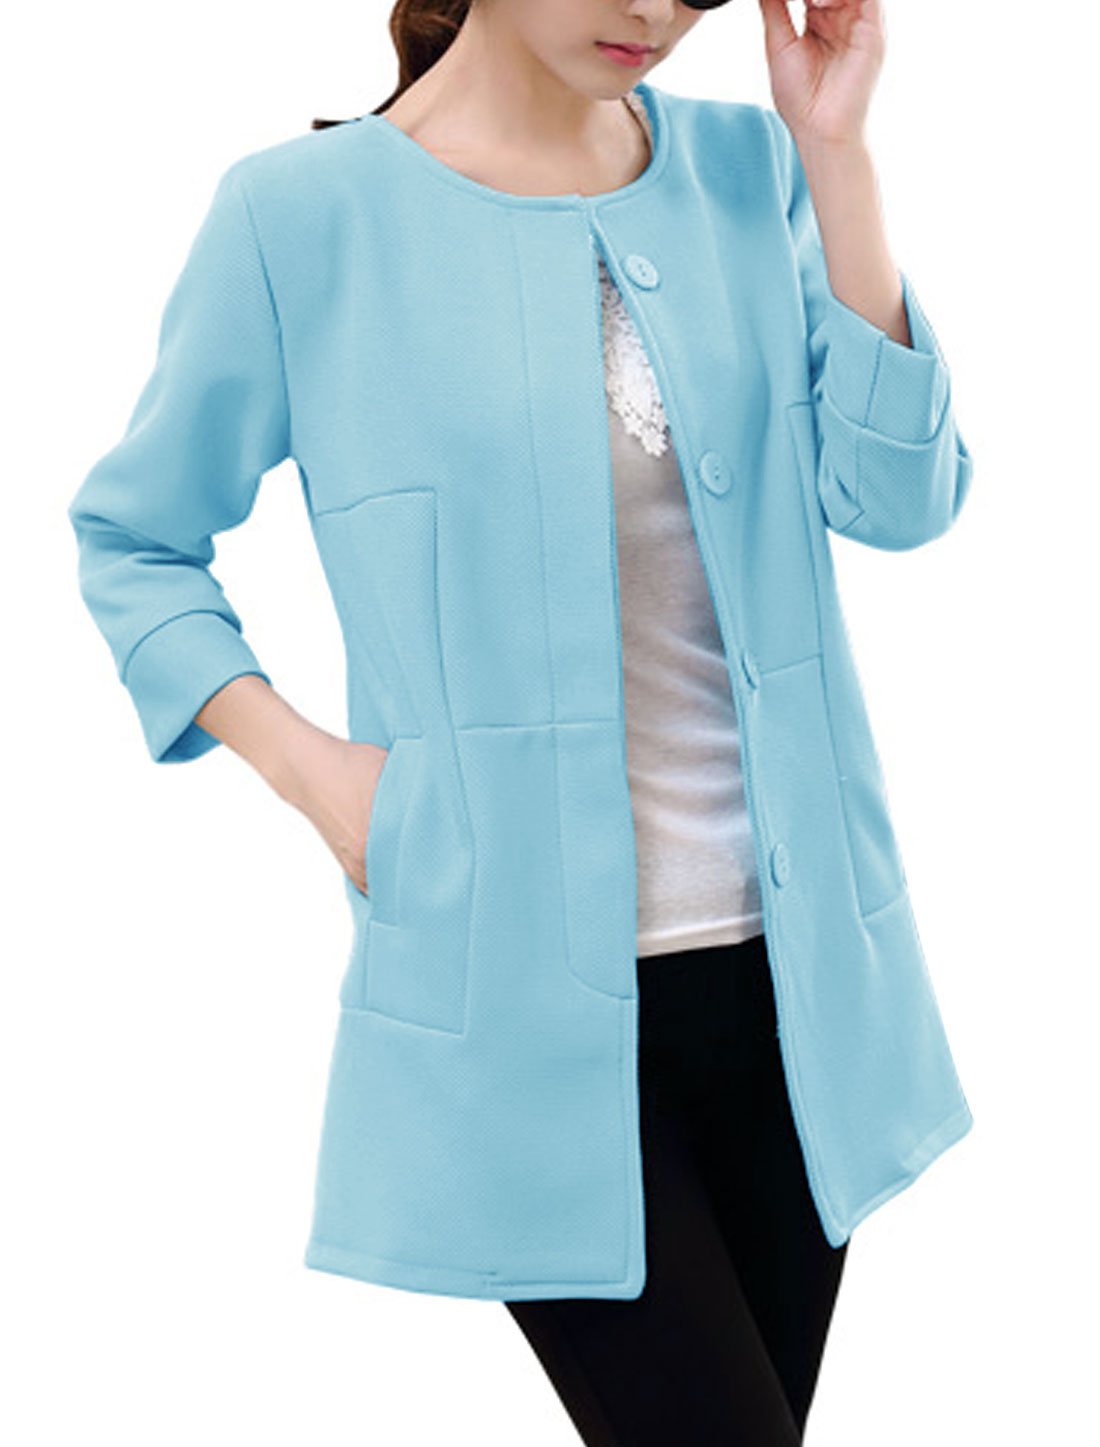 New Style Round Neck Single Breasted Casual Blazer Light Blue S